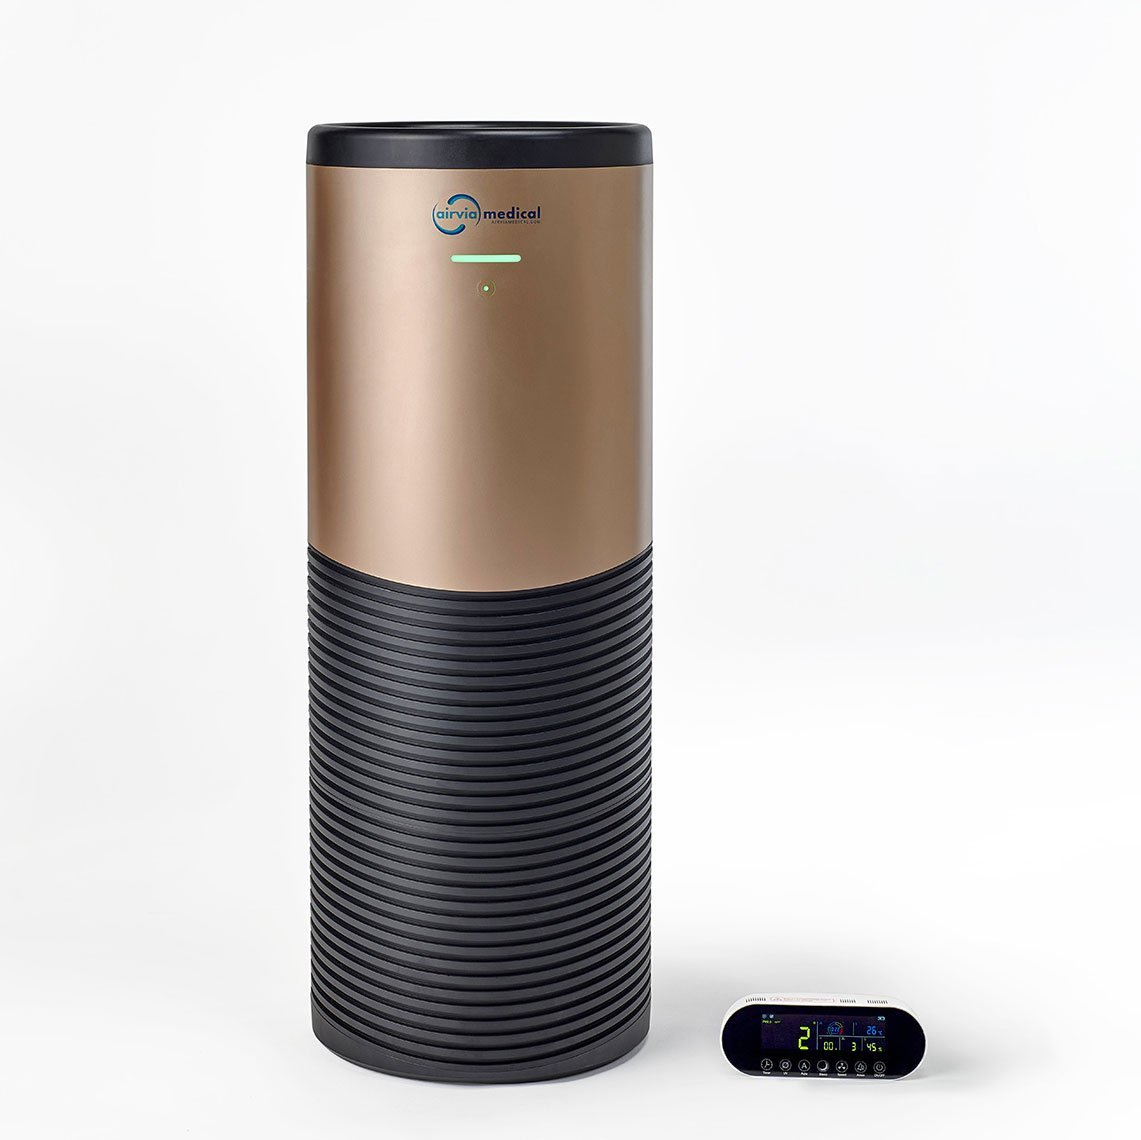 Purificateur d'air AIRVIA PRO 150 - Purificateurdair.com